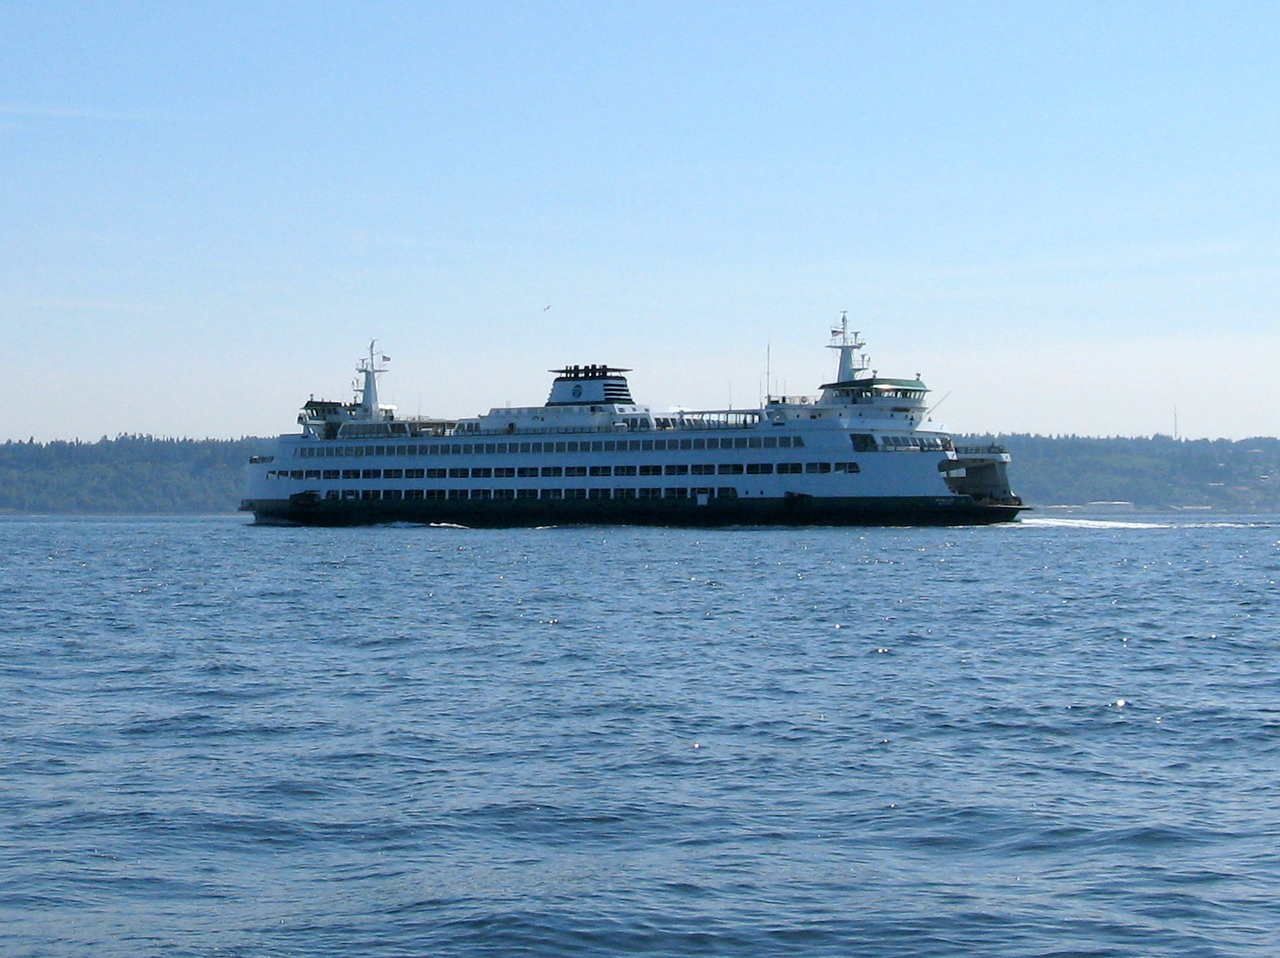 The Edmonds-Kingston ferry, which is a very common sight.